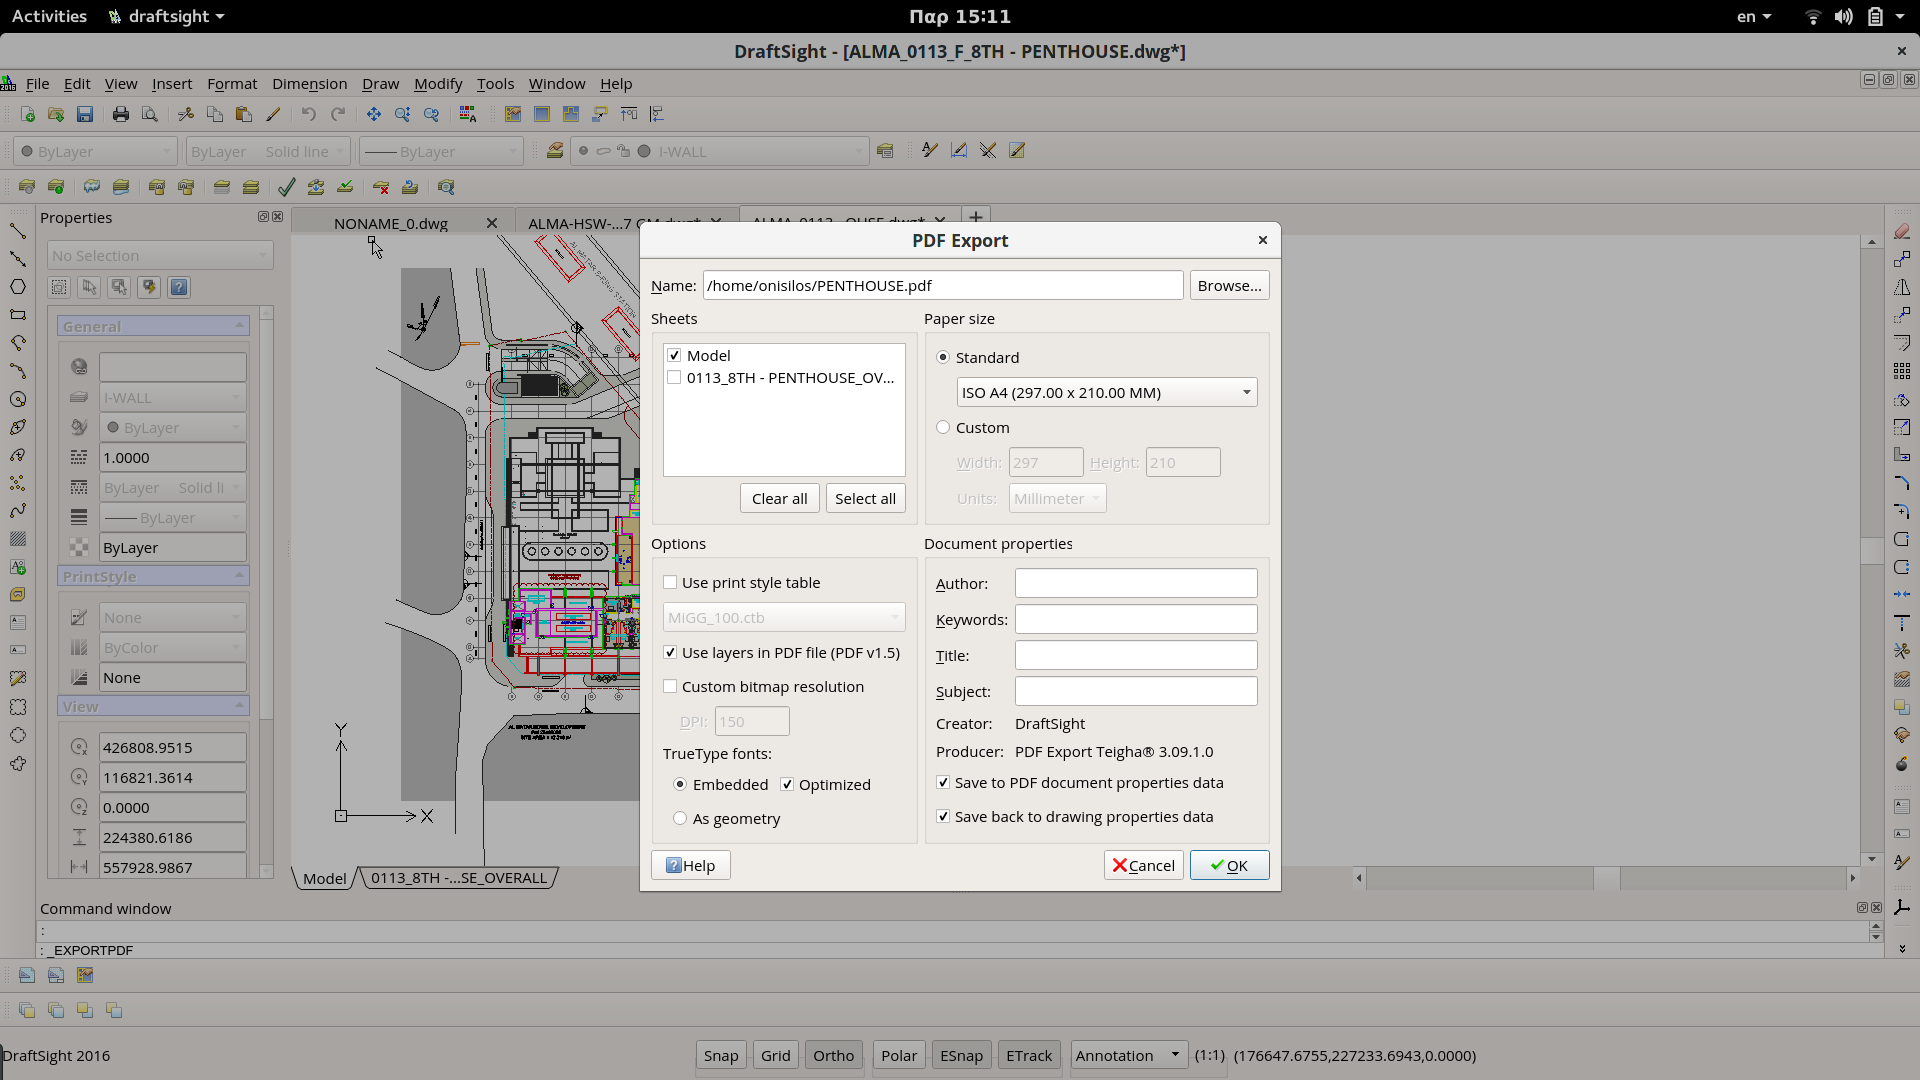 Export high quality images from draftsight or autocad to.